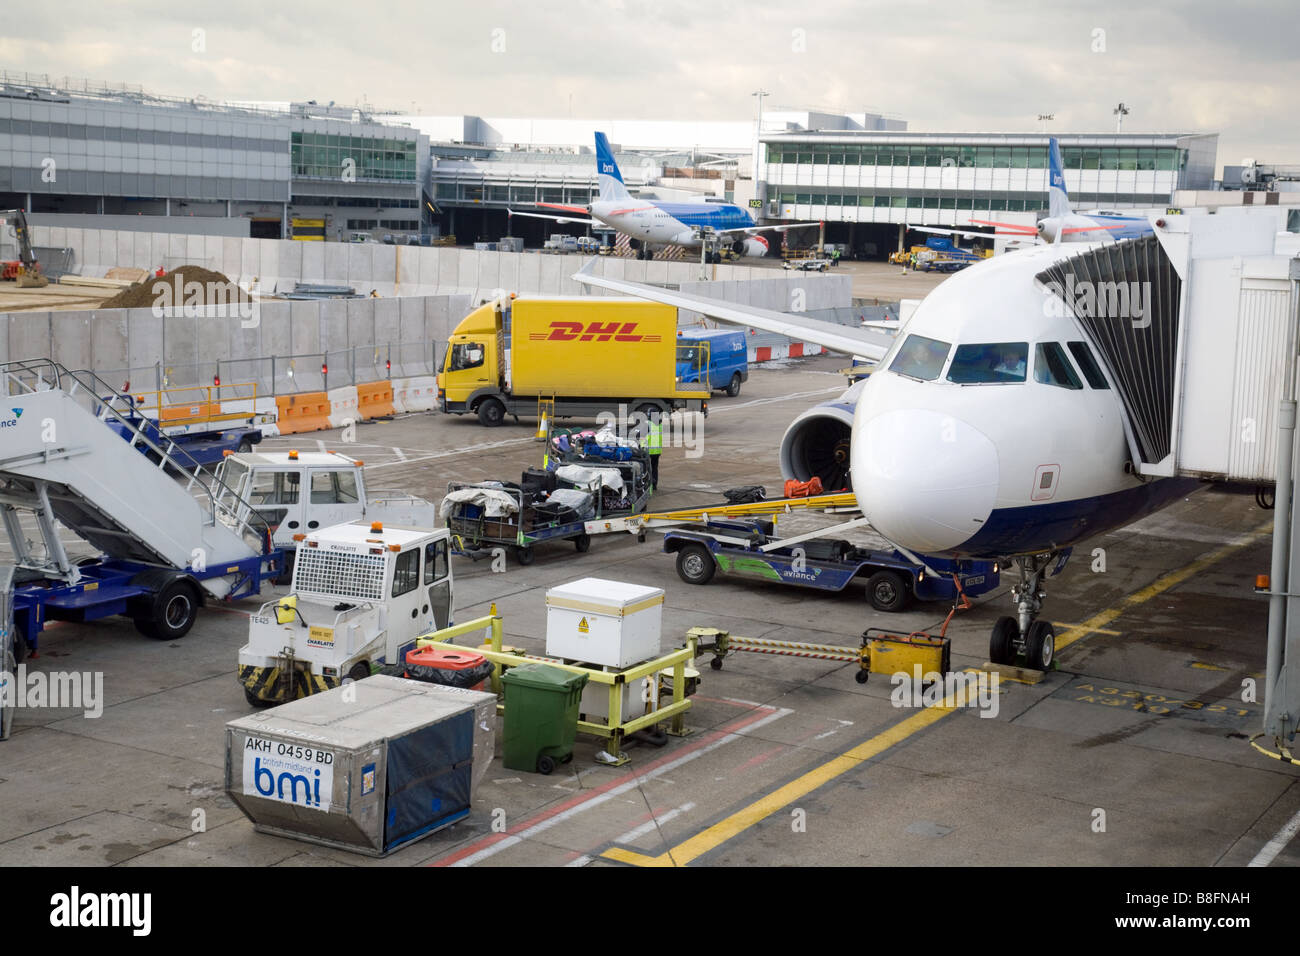 A BMI plane on the tarmac at Terminal 1, Heathrow airport, London, UK - Stock Image